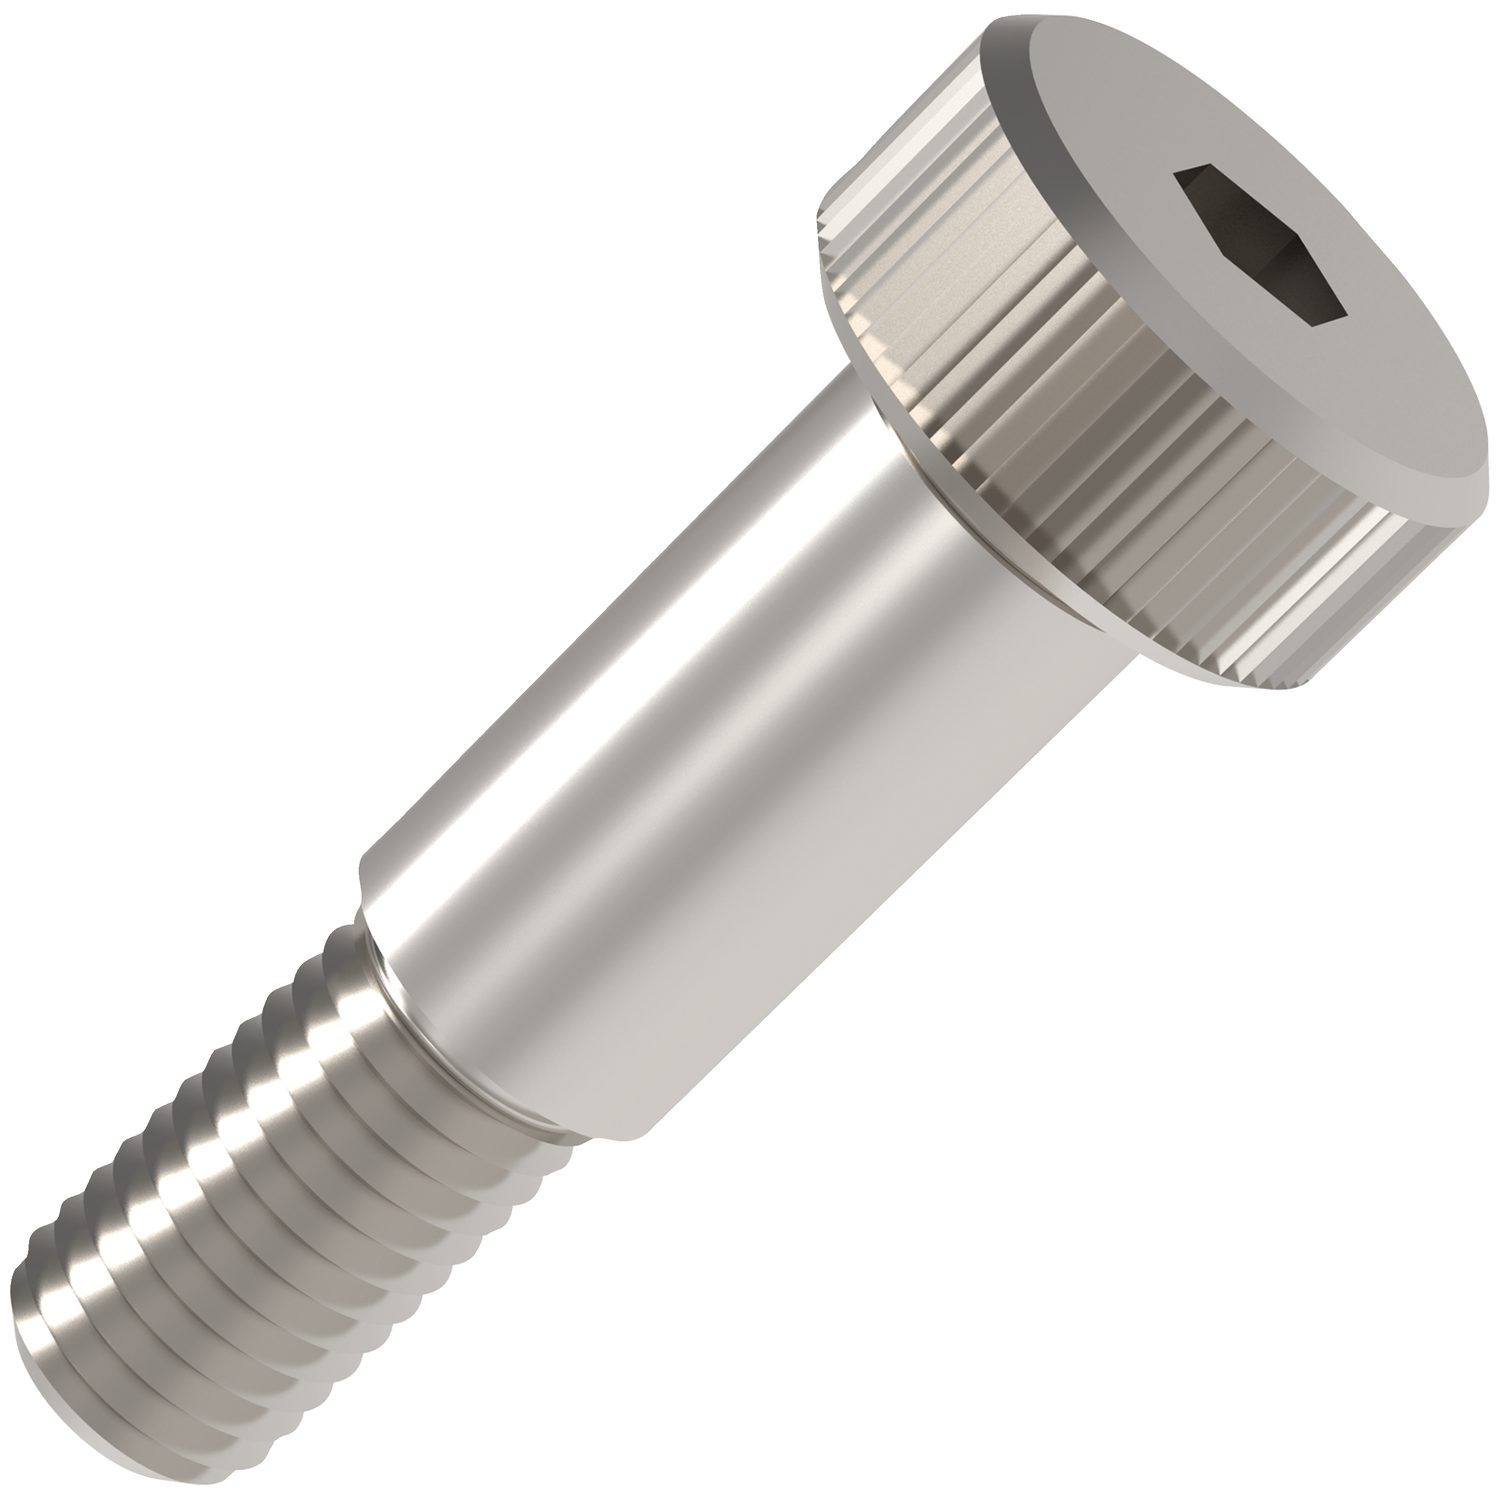 P0137 - Shoulder Screws - Hex. Socket Head